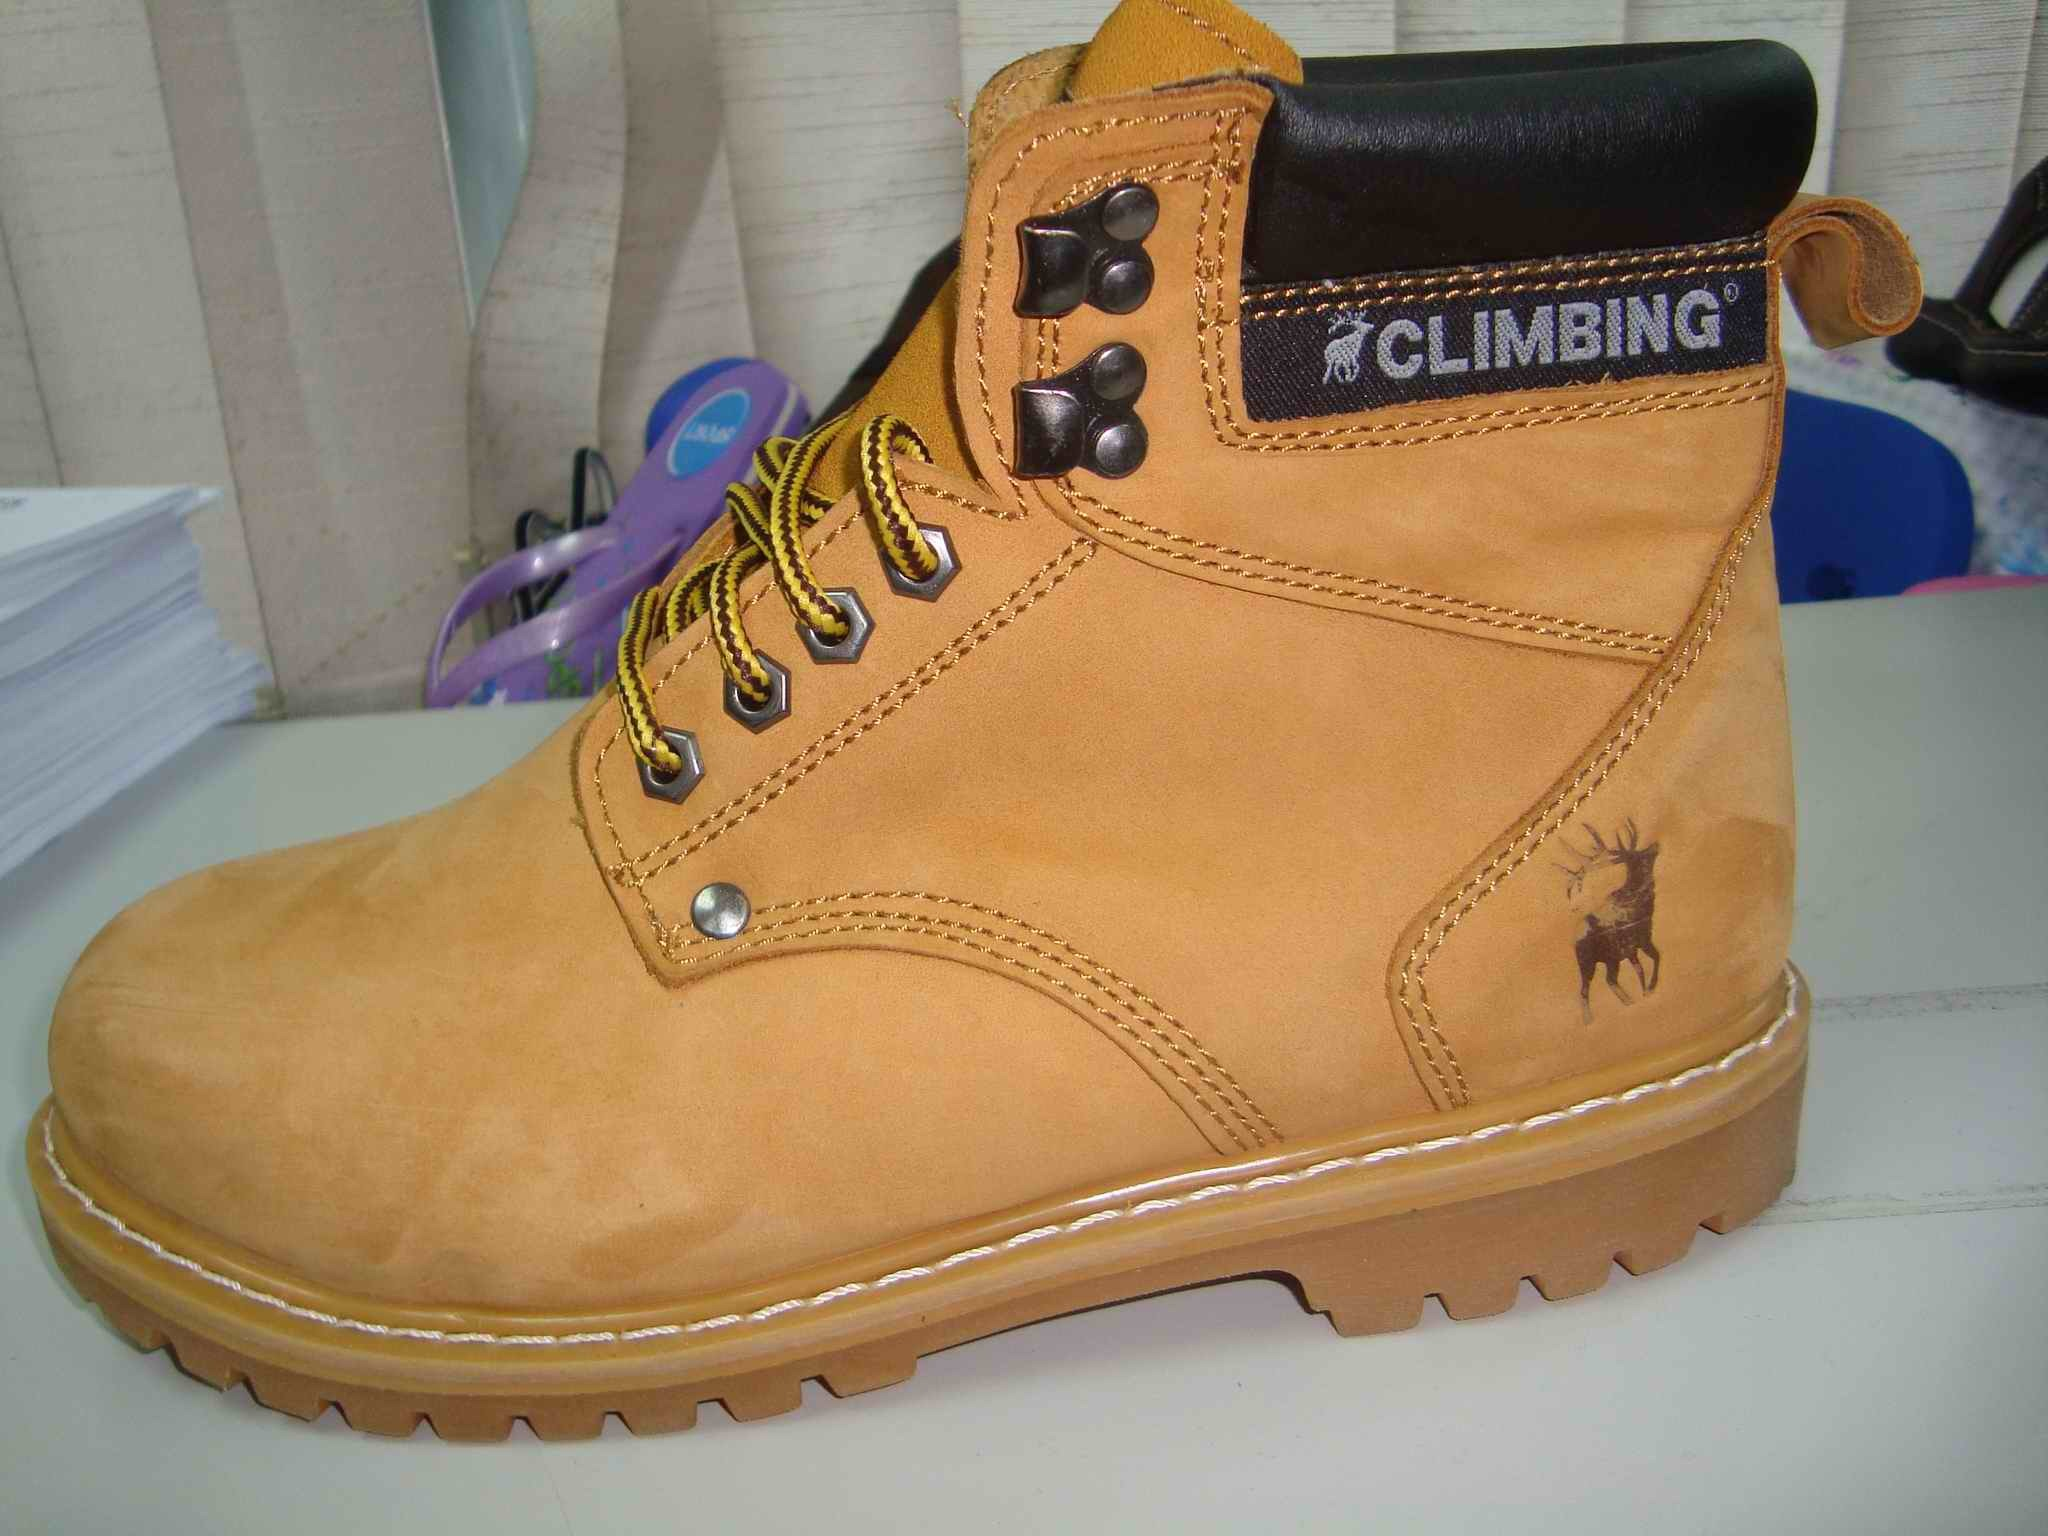 Safety Boots ASTM F2413-05